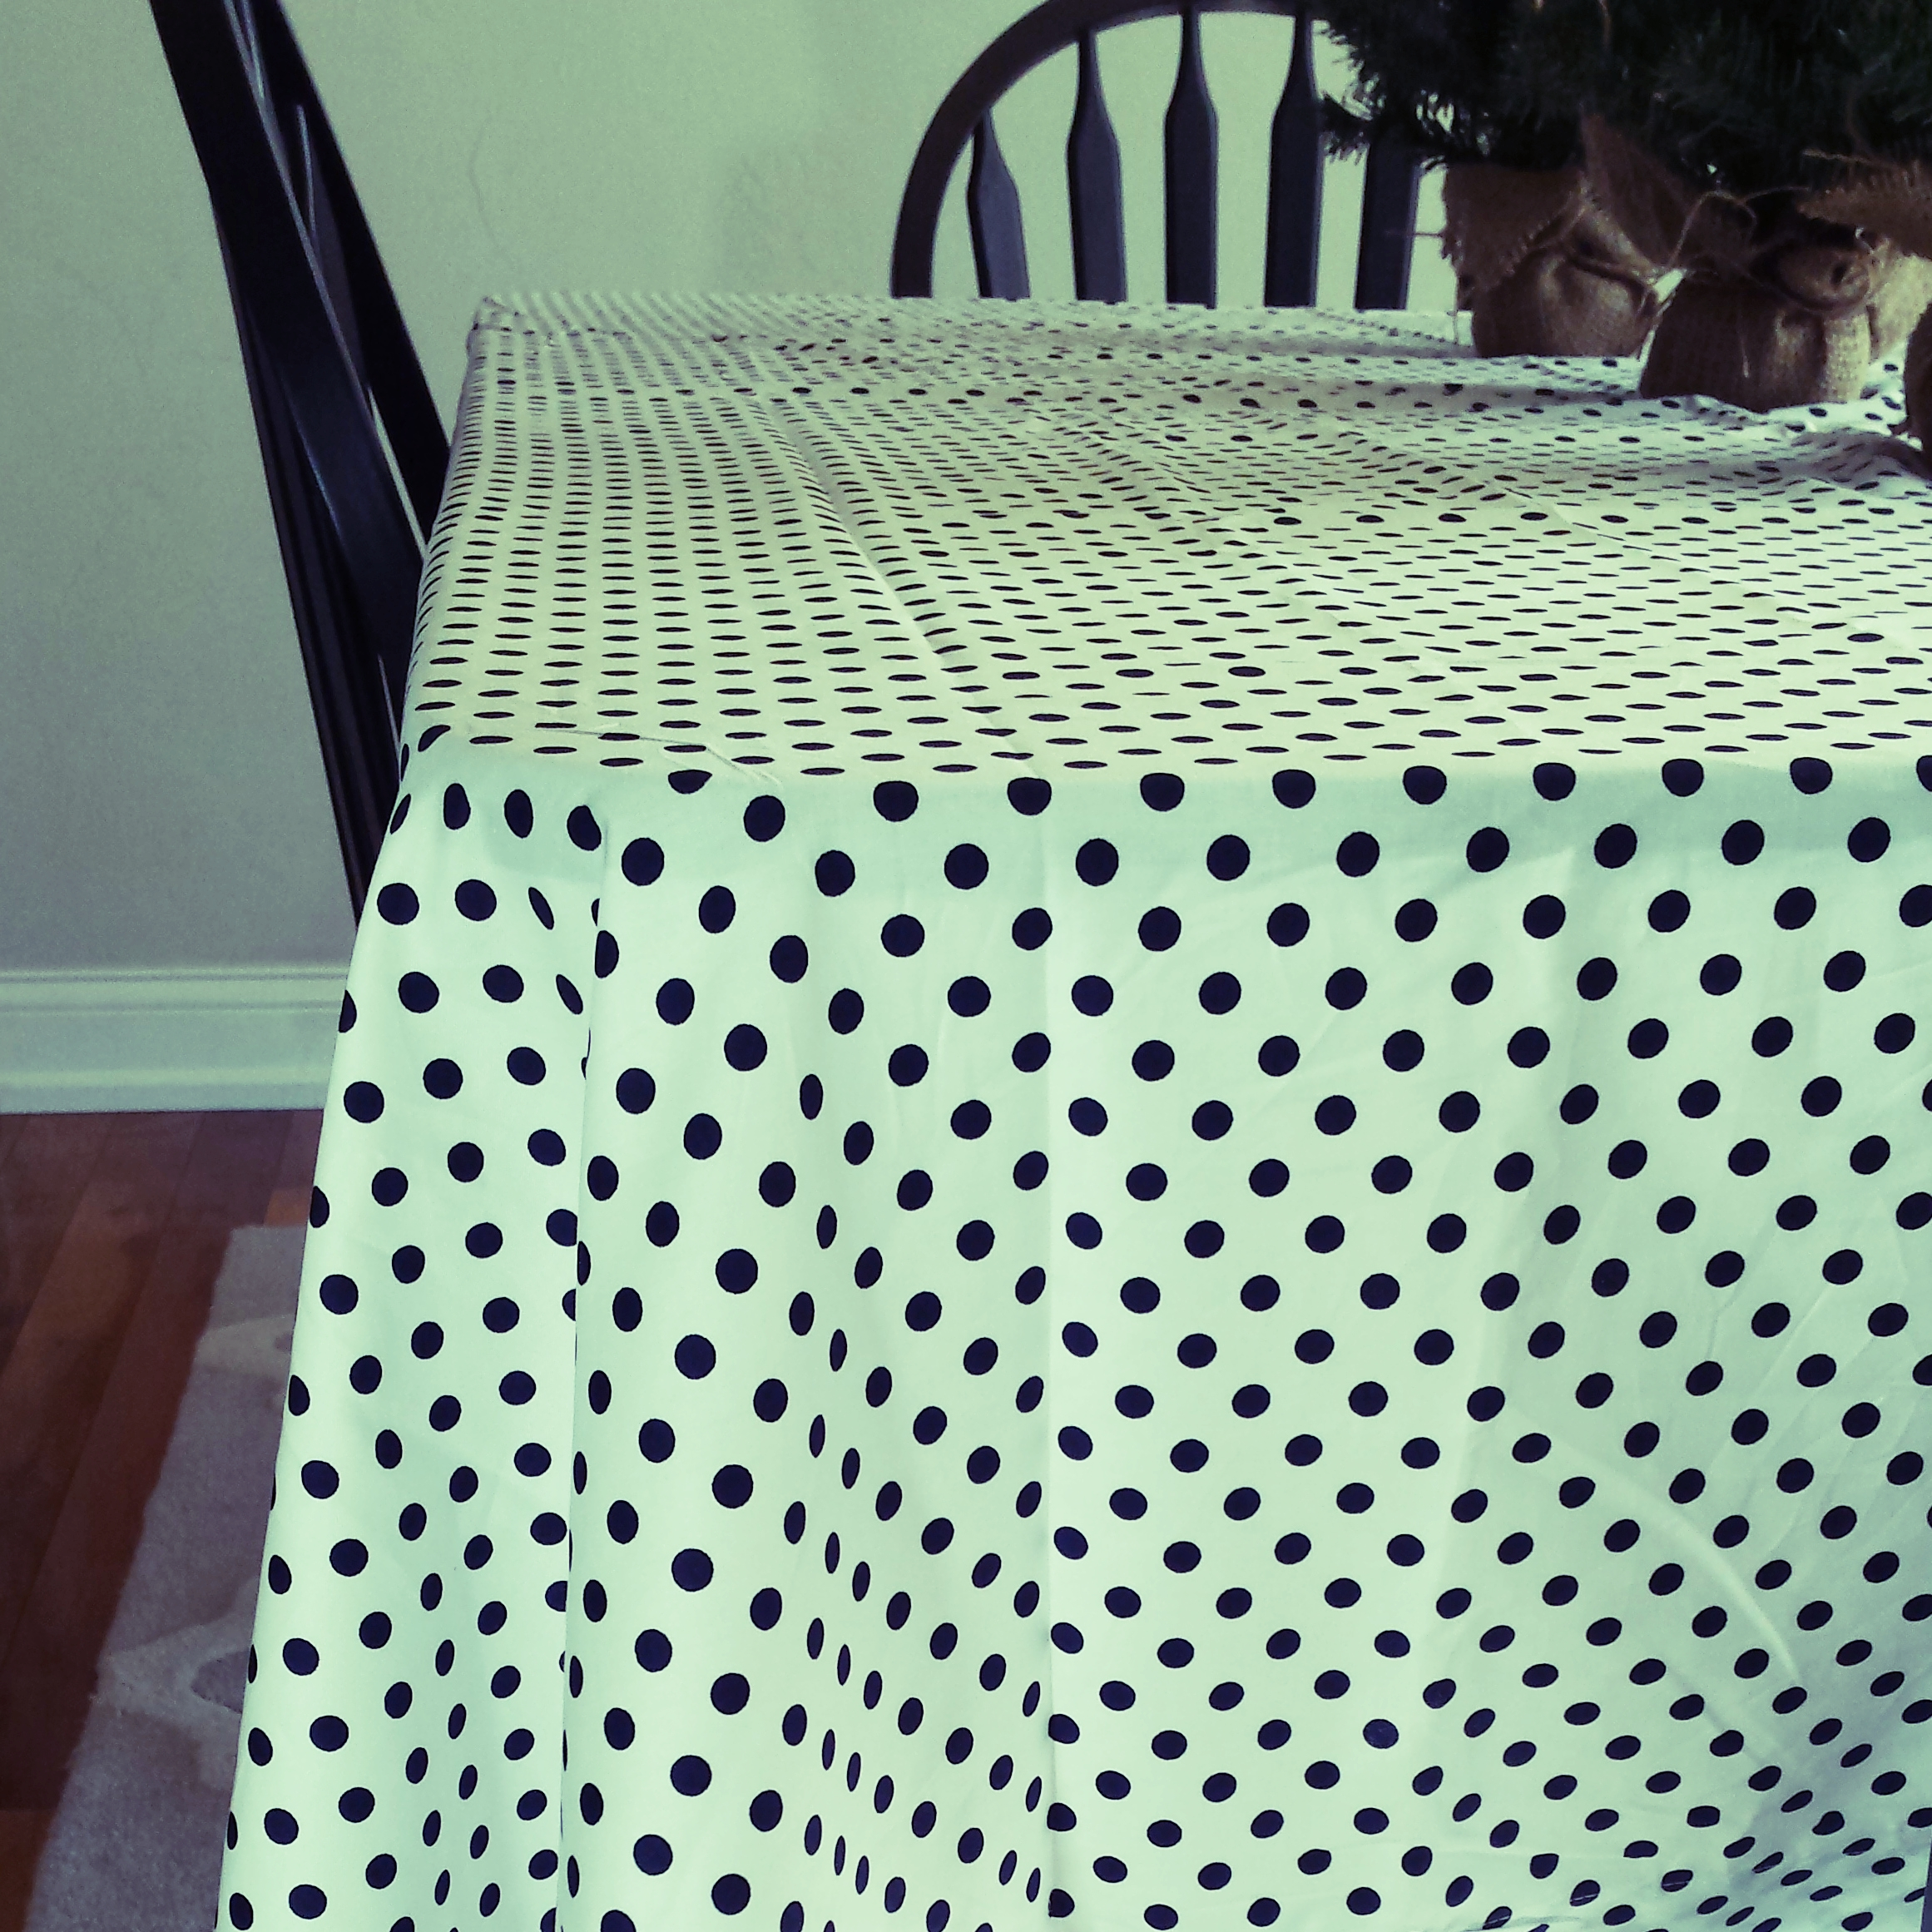 table cloth.jpg